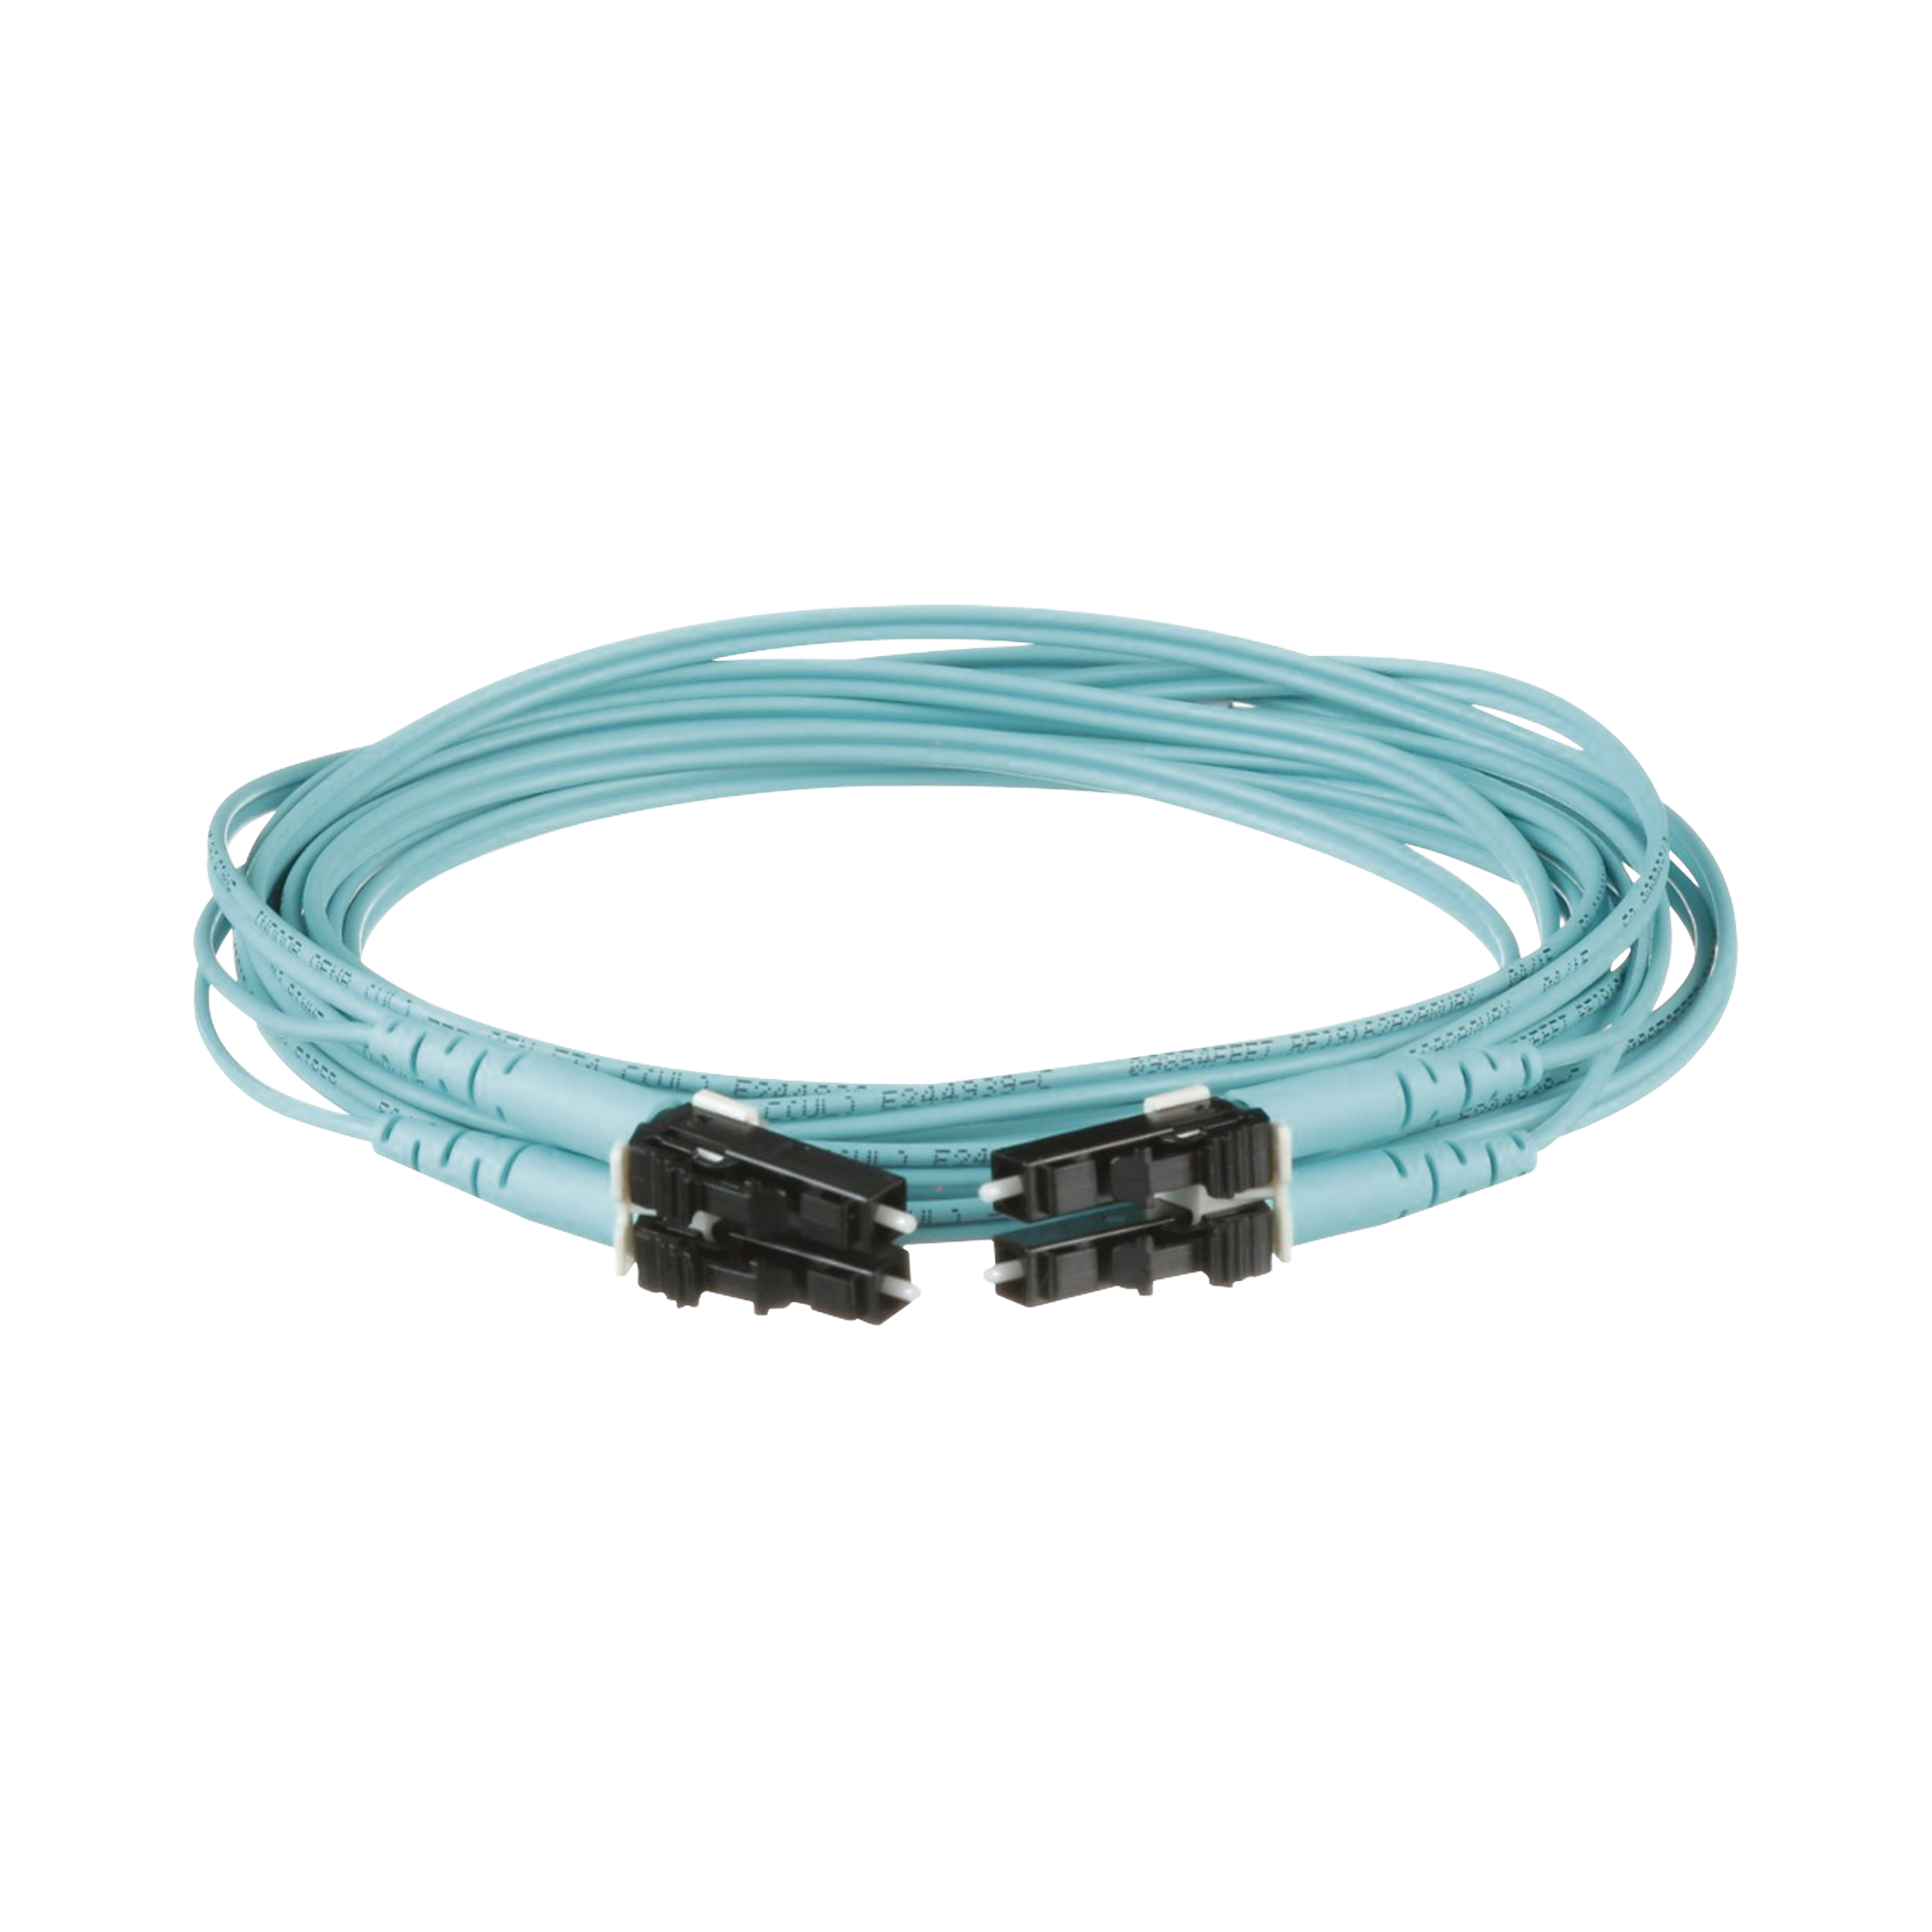 Jumper de Fibra Optica Multimodo 50/125 OM4, LC-LC Duplex, OFNR (Riser), Color Aqua, 1 Metro